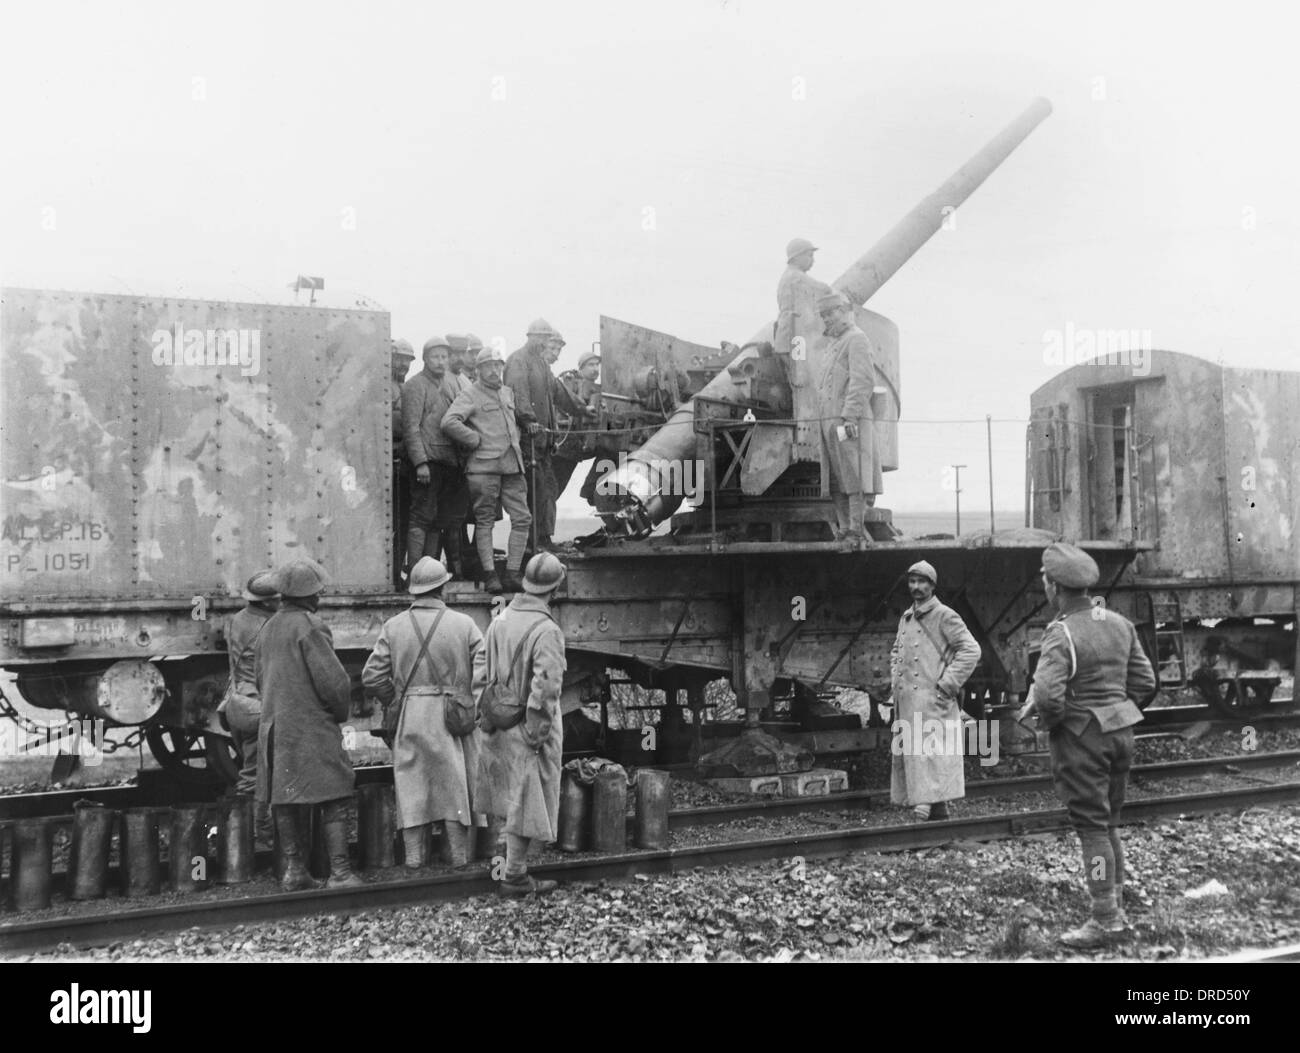 French artillery - Stock Image